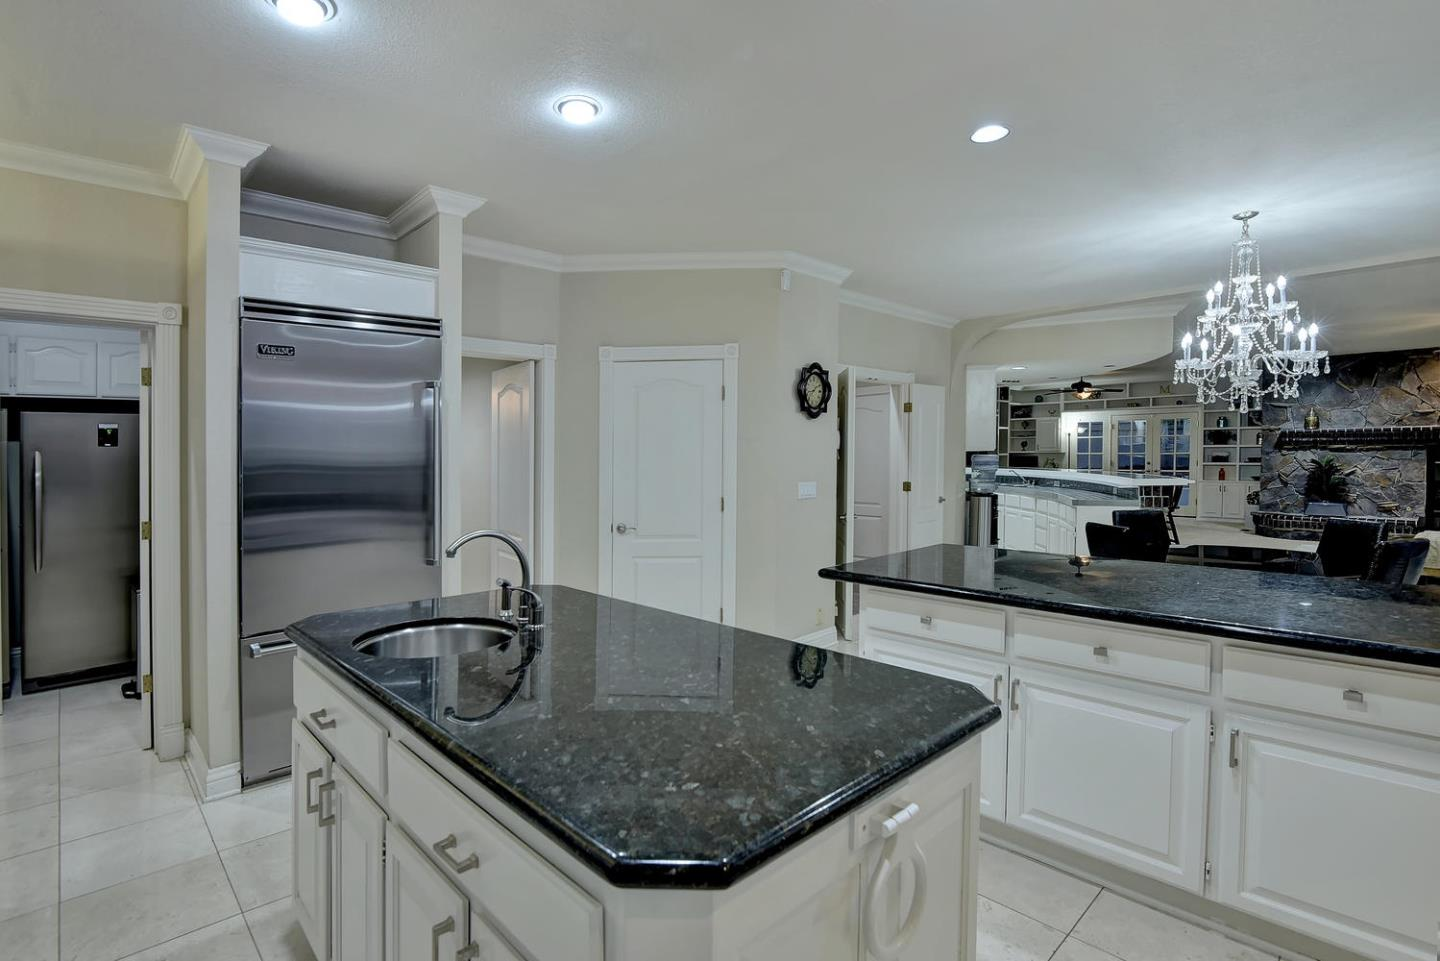 Additional photo for property listing at 2740 Toro Vista Court  Morgan Hill, カリフォルニア 95037 アメリカ合衆国